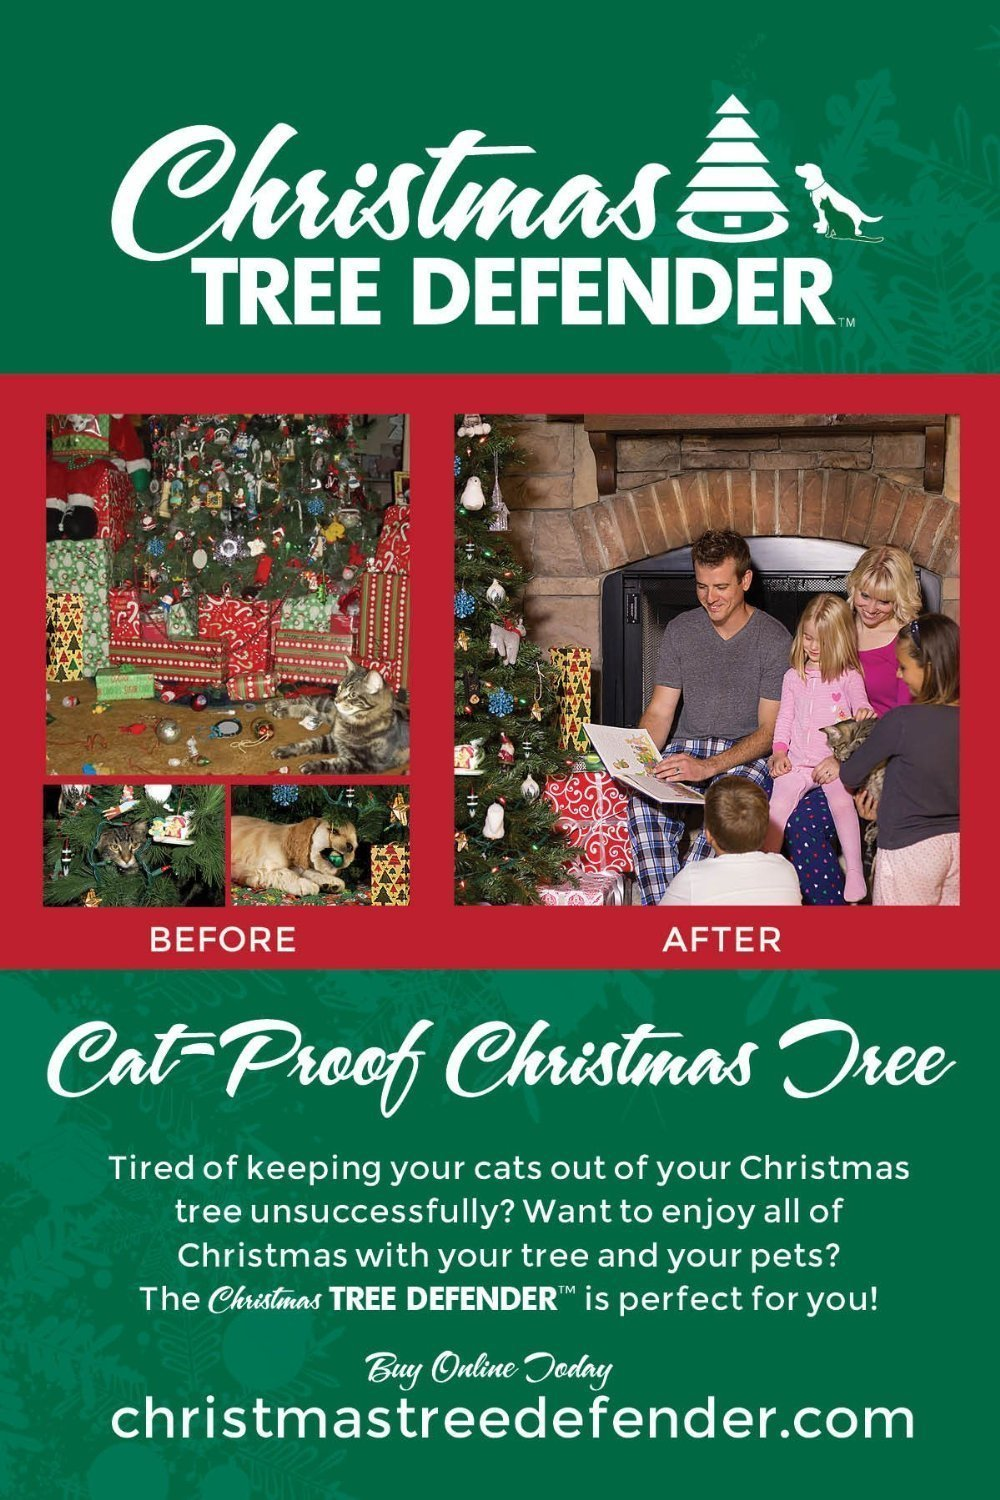 How To Cat Proof Your Christmas Tree.Buy Christmas Tree Defender Cat Proof Your Christmas Tree